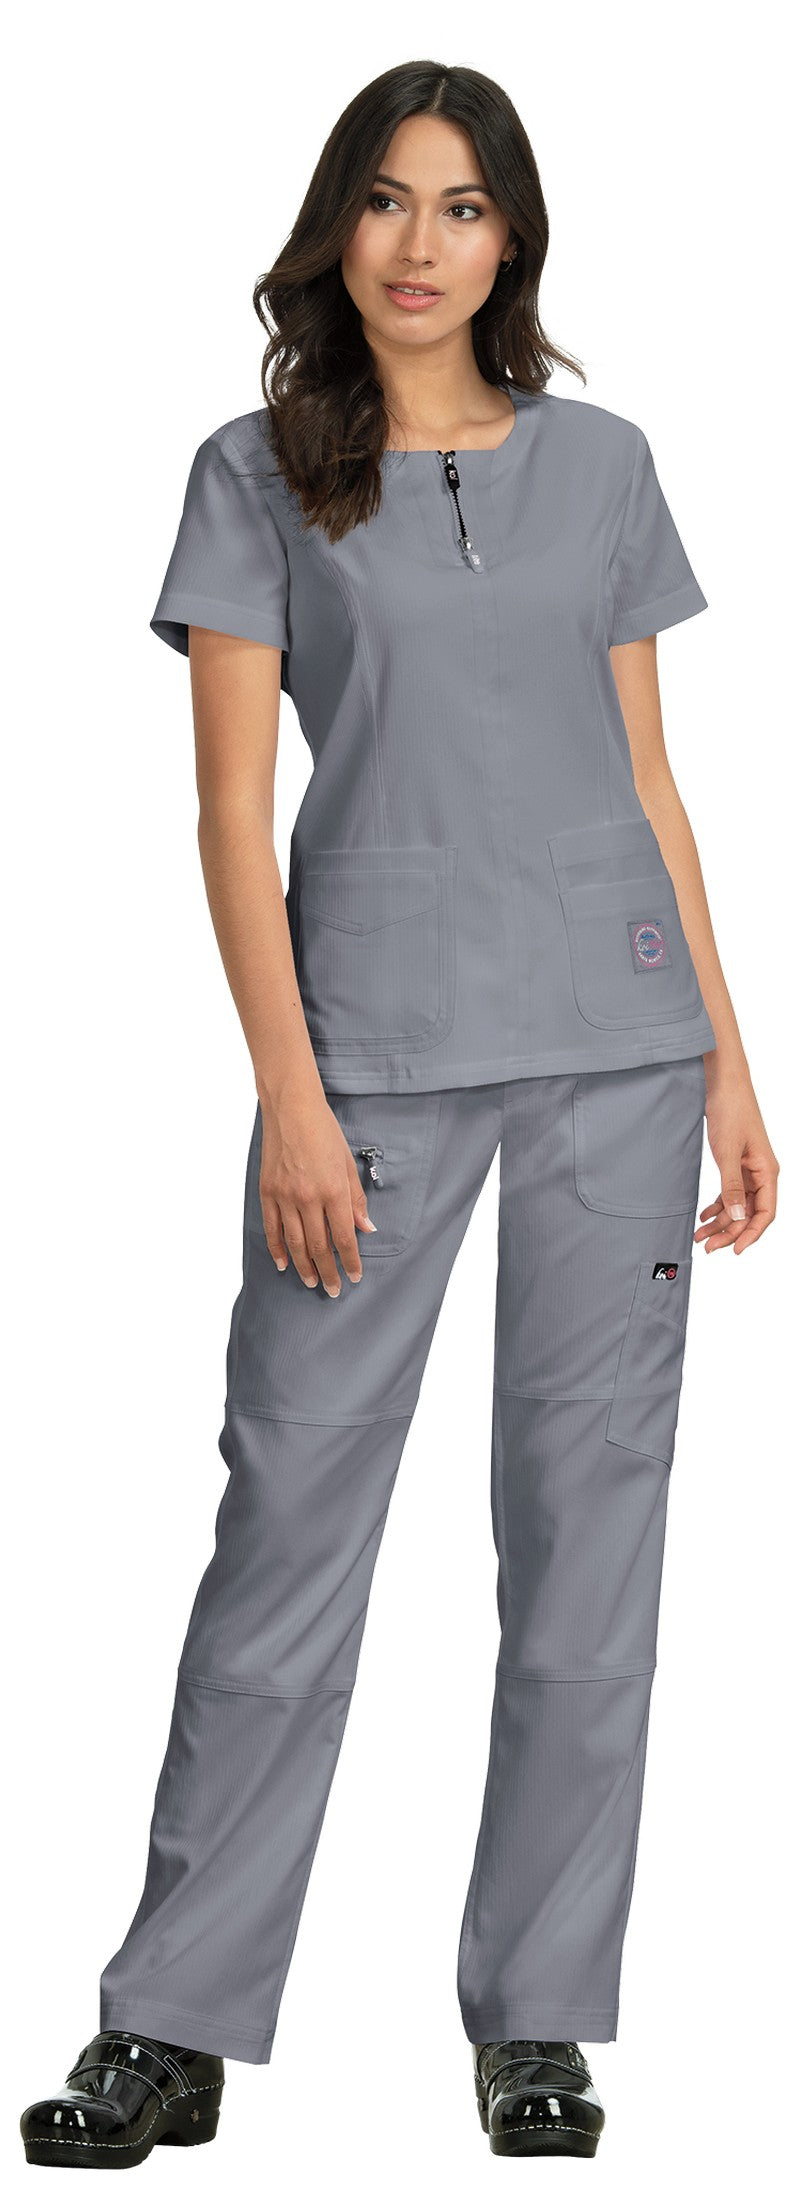 Copy of Copy of Koi Serenity Scrub Top (Platinum Grey)